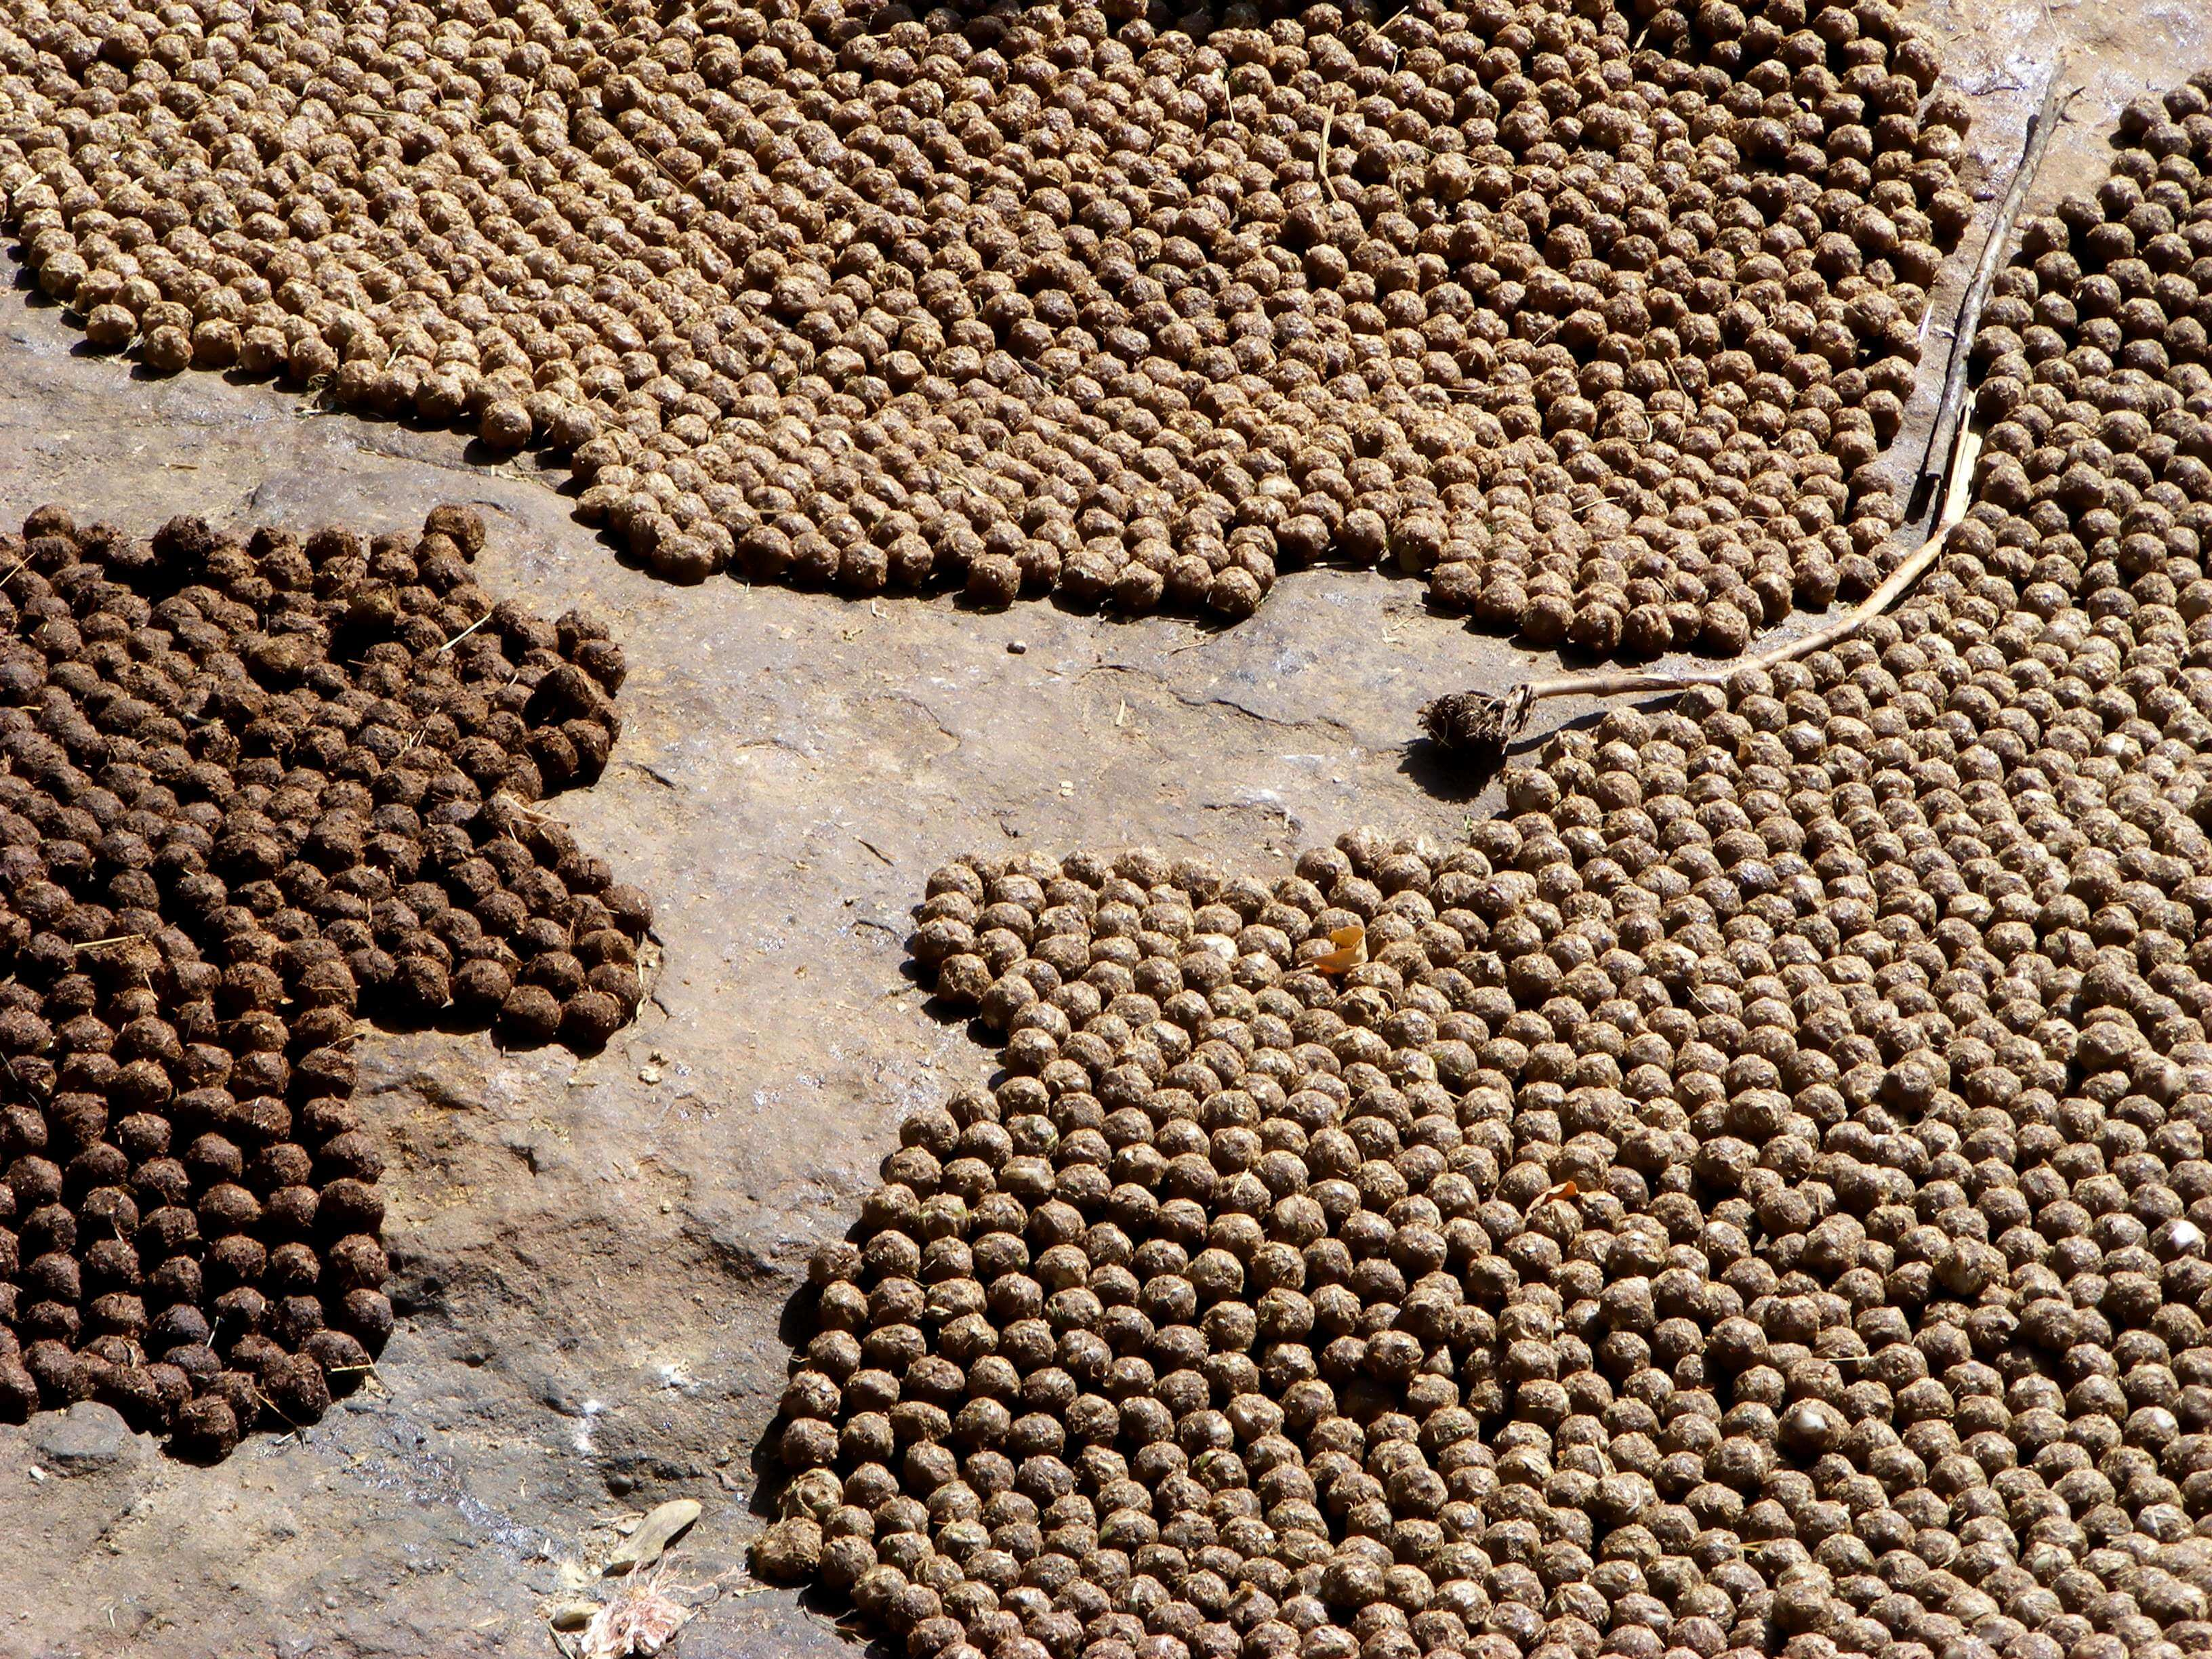 Mali, Dogon, onion balls, spices,